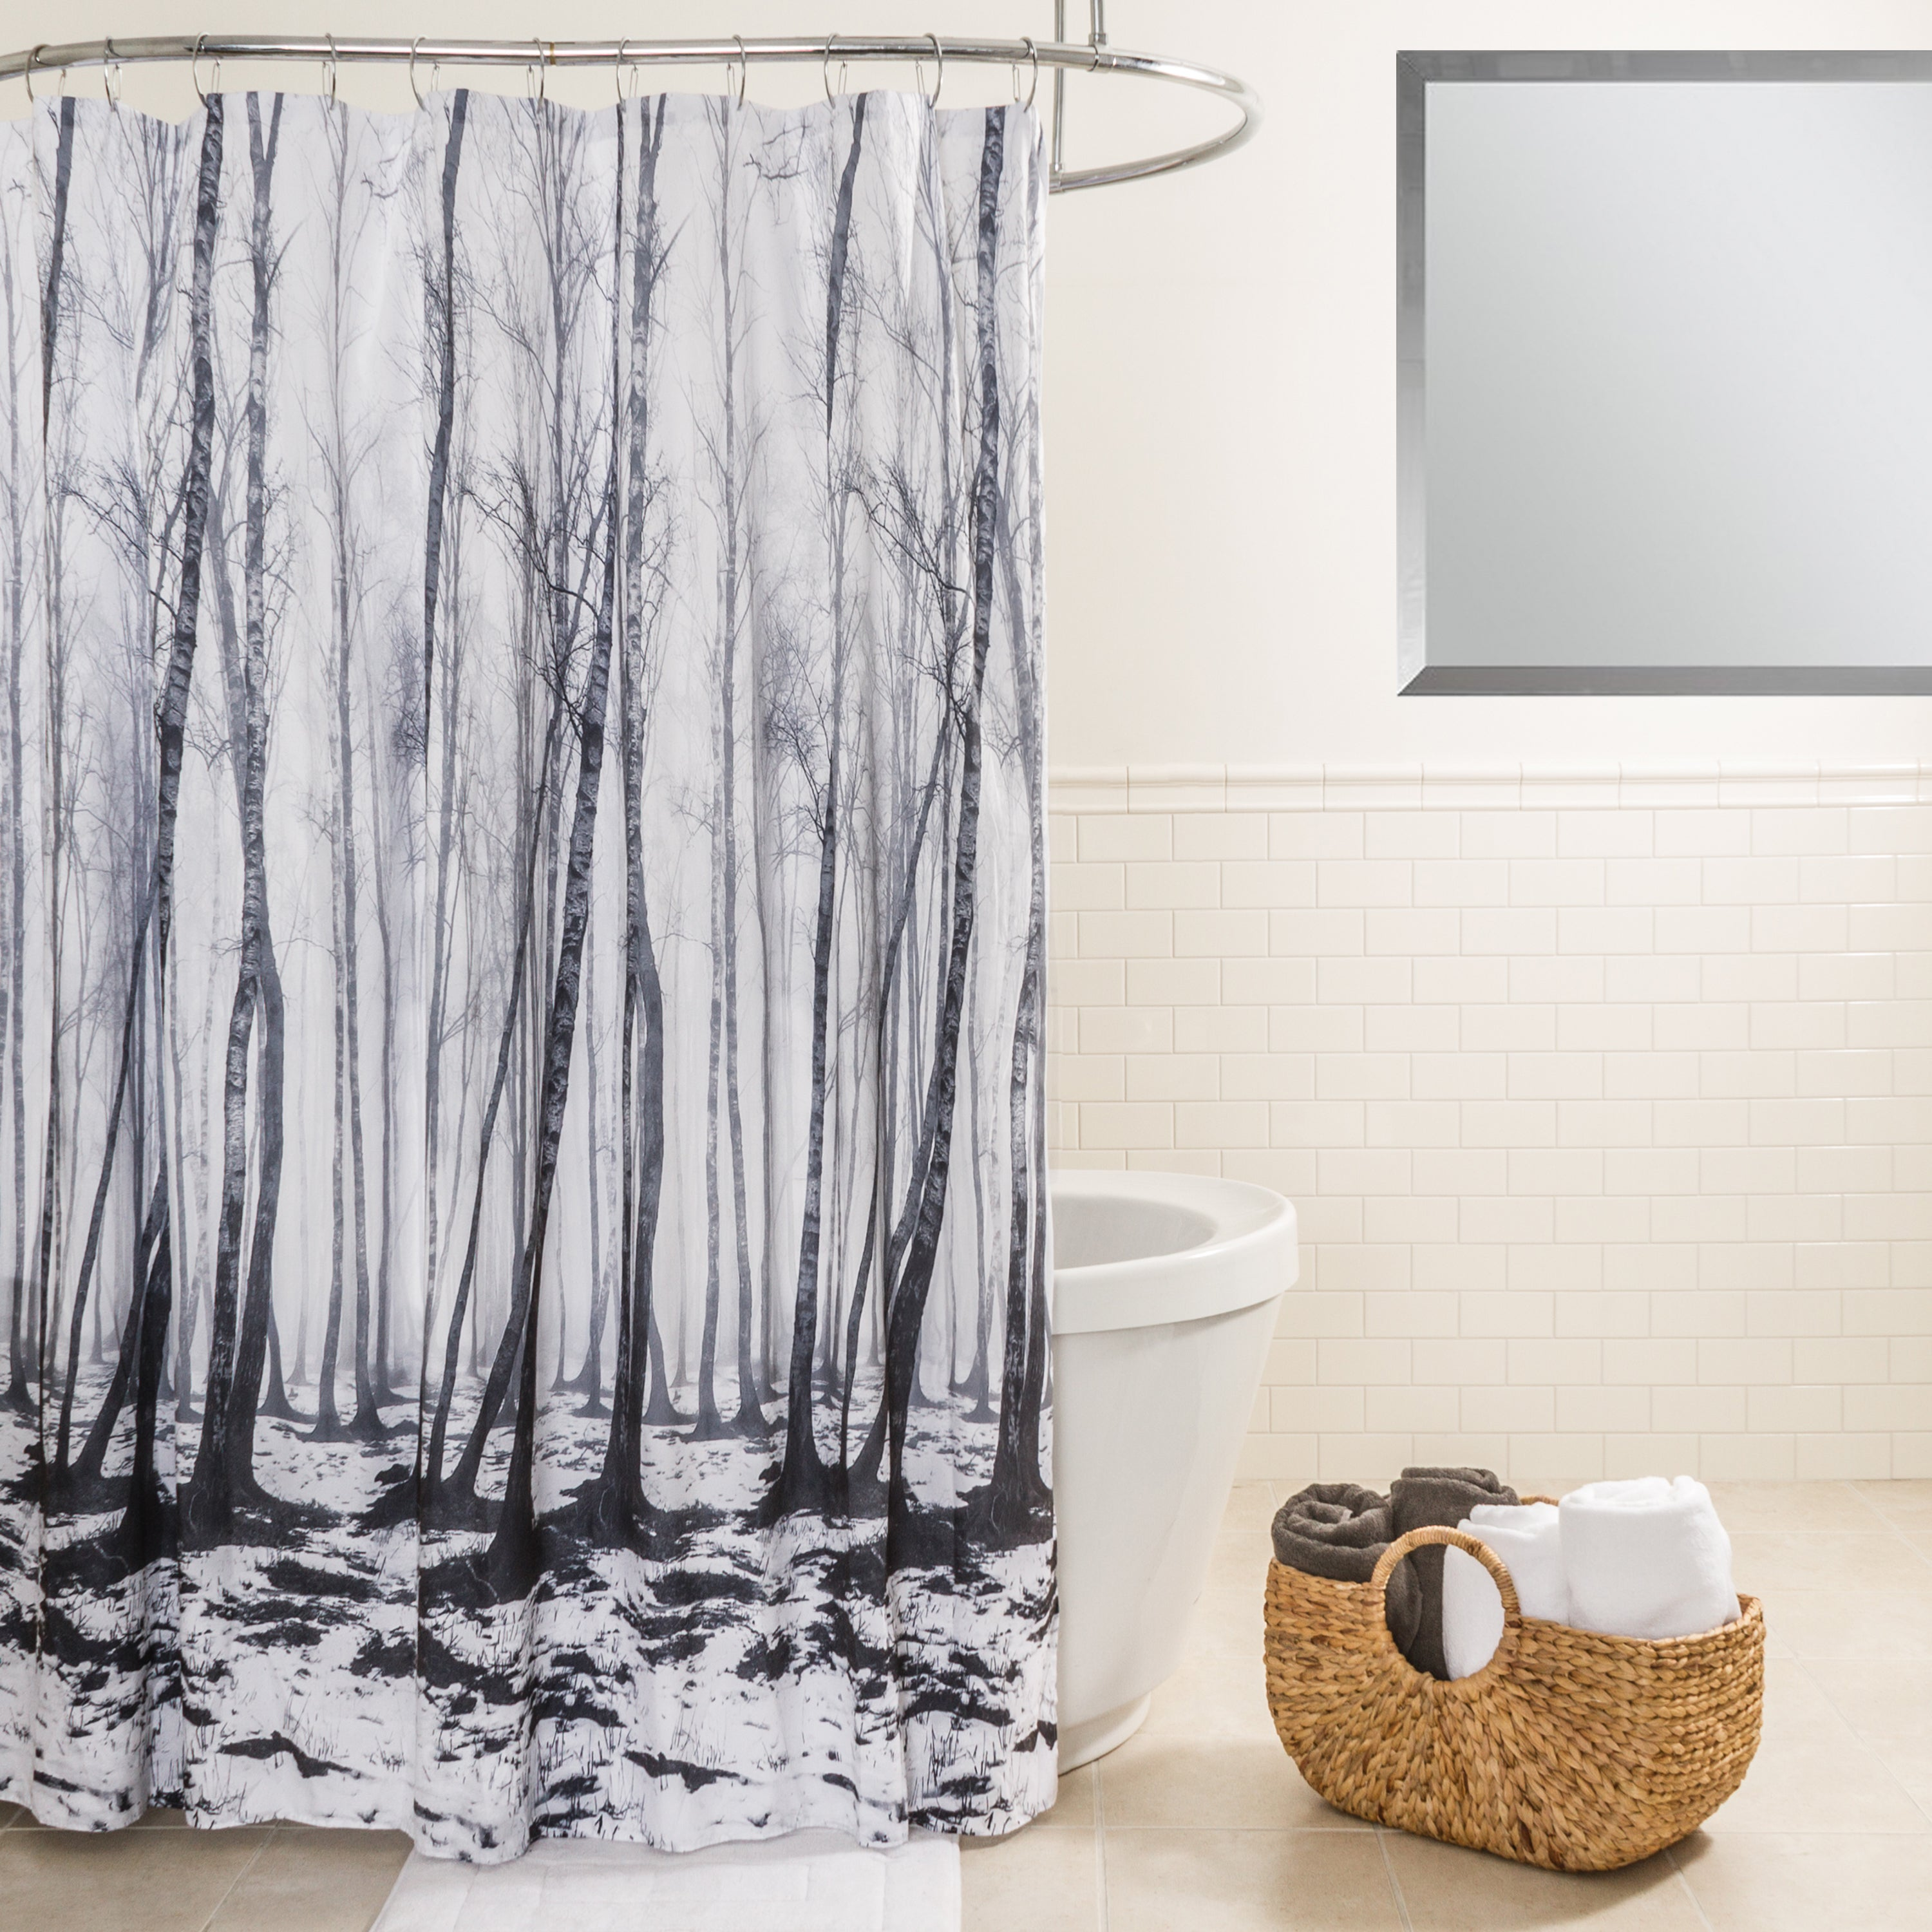 Splash Home Fog Forest Black And White Fabric Shower Curtain